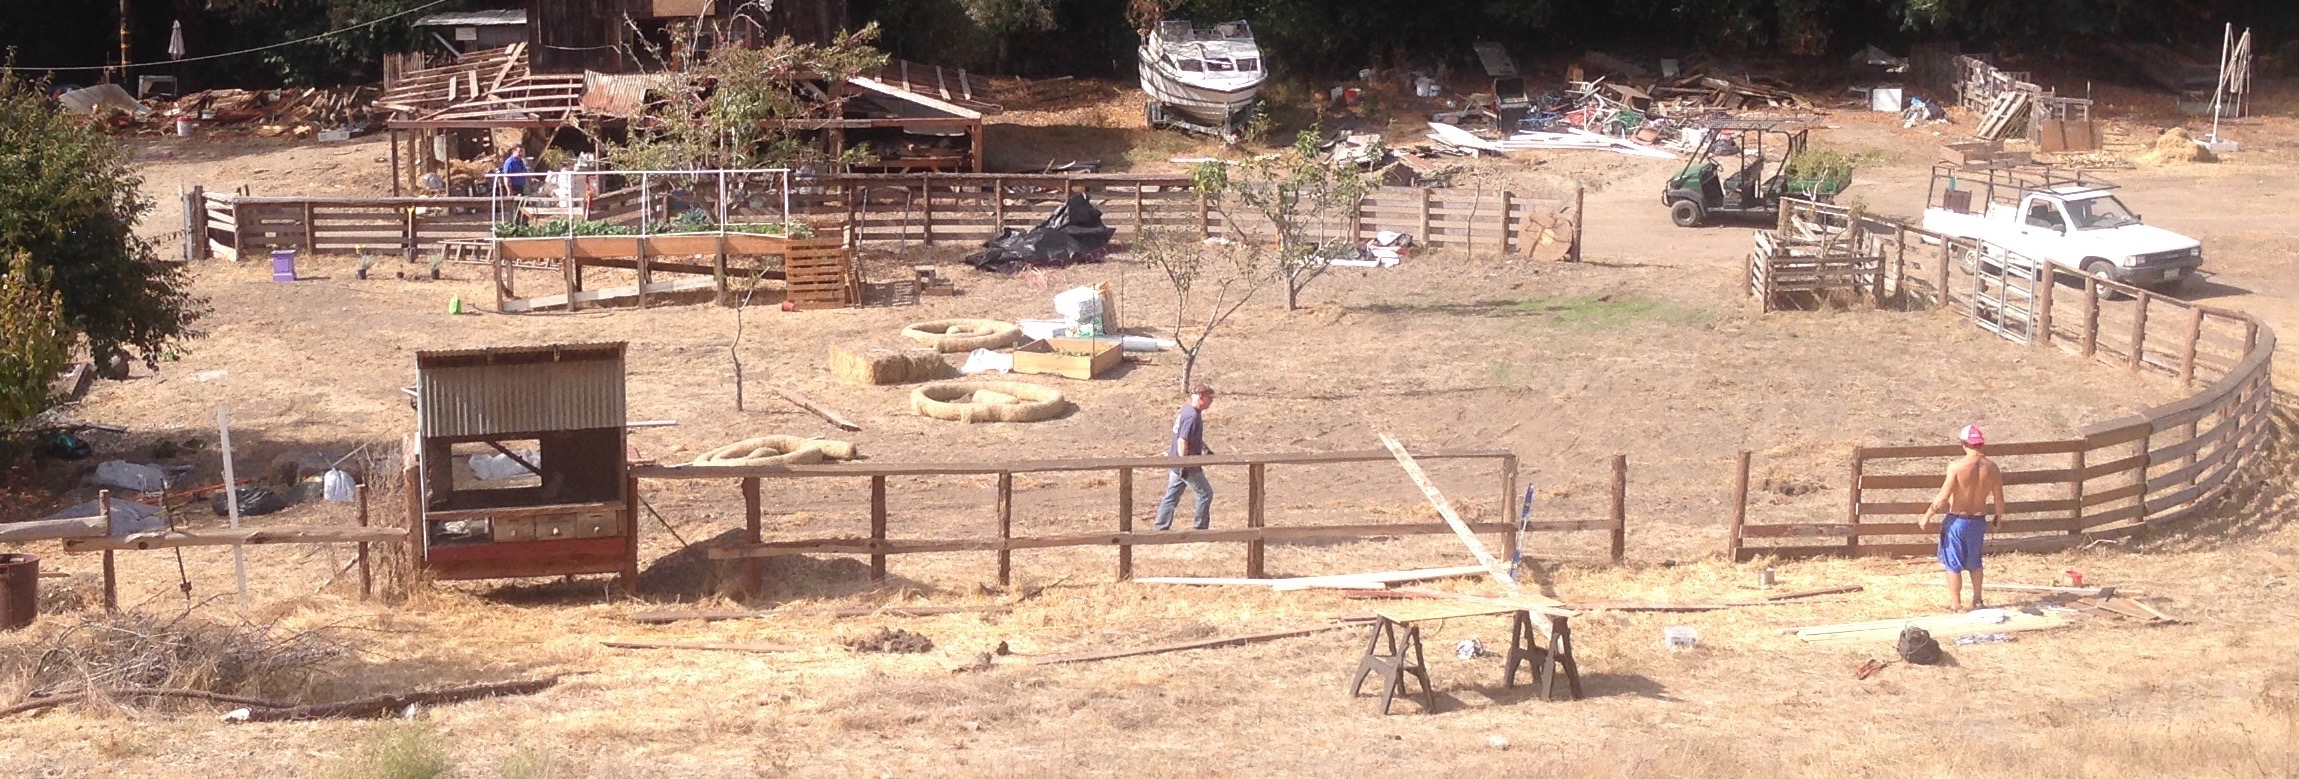 View from the overlooking hill of the corral. The fence is sparce and unfinished.